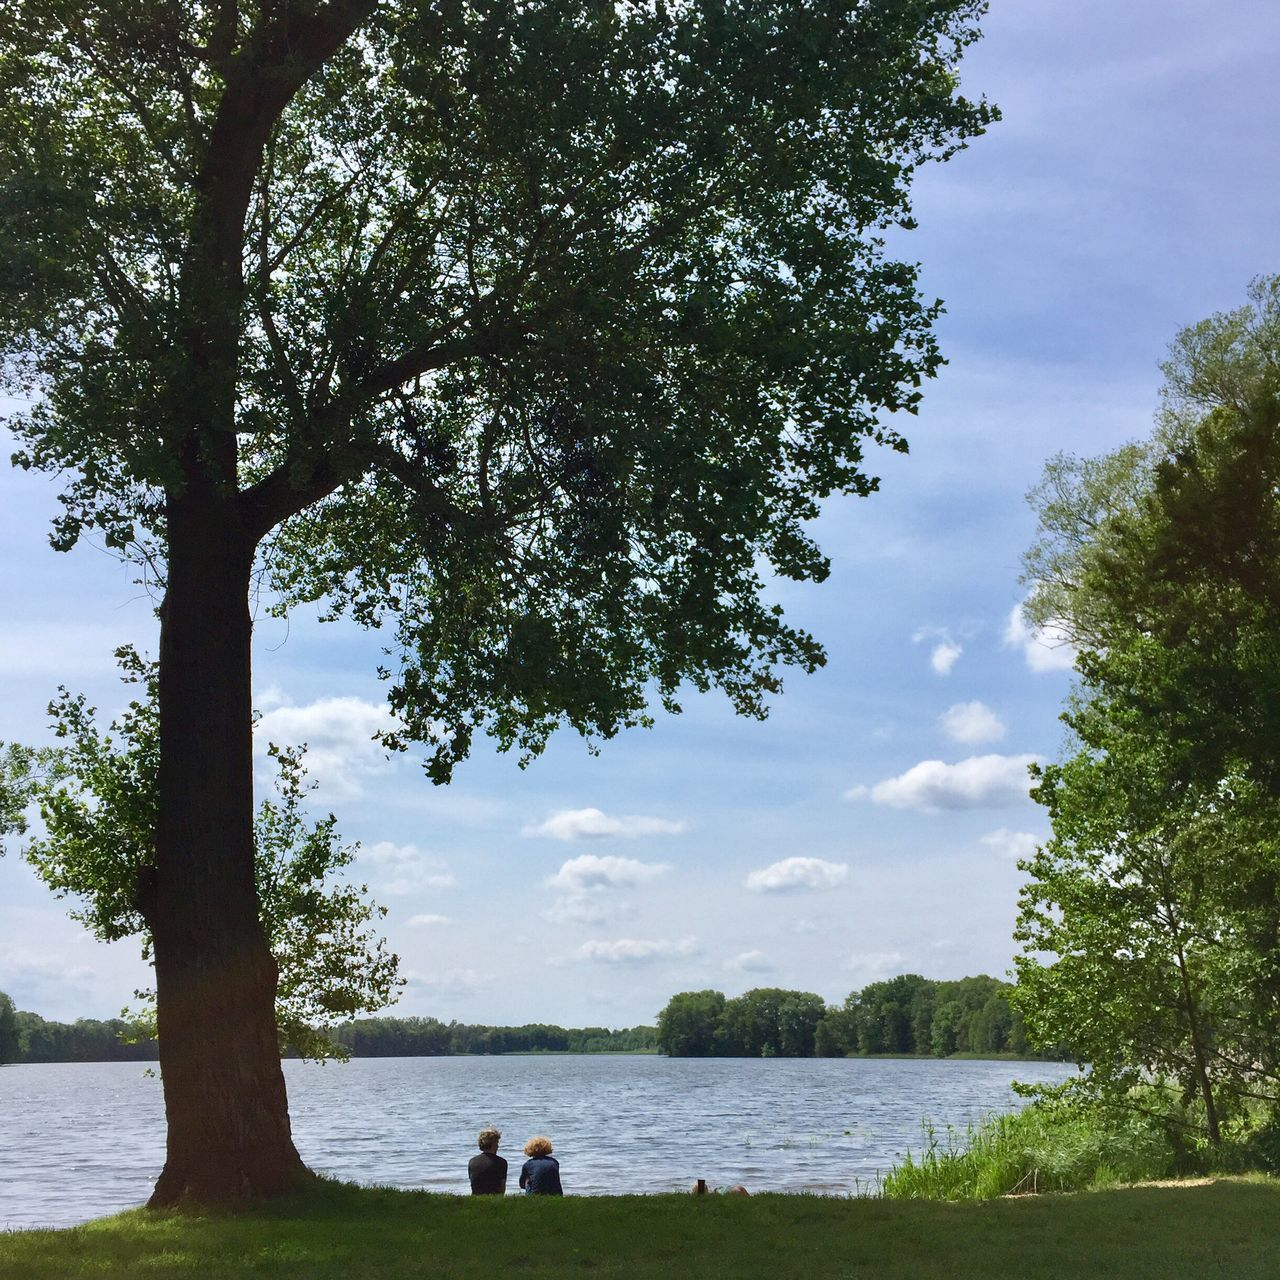 Tree Water Lake Nature Sky Day Tree Trunk Leisure Activity Togetherness Outdoors Beauty In Nature Growth Cloud - Sky Real People Scenics Sitting